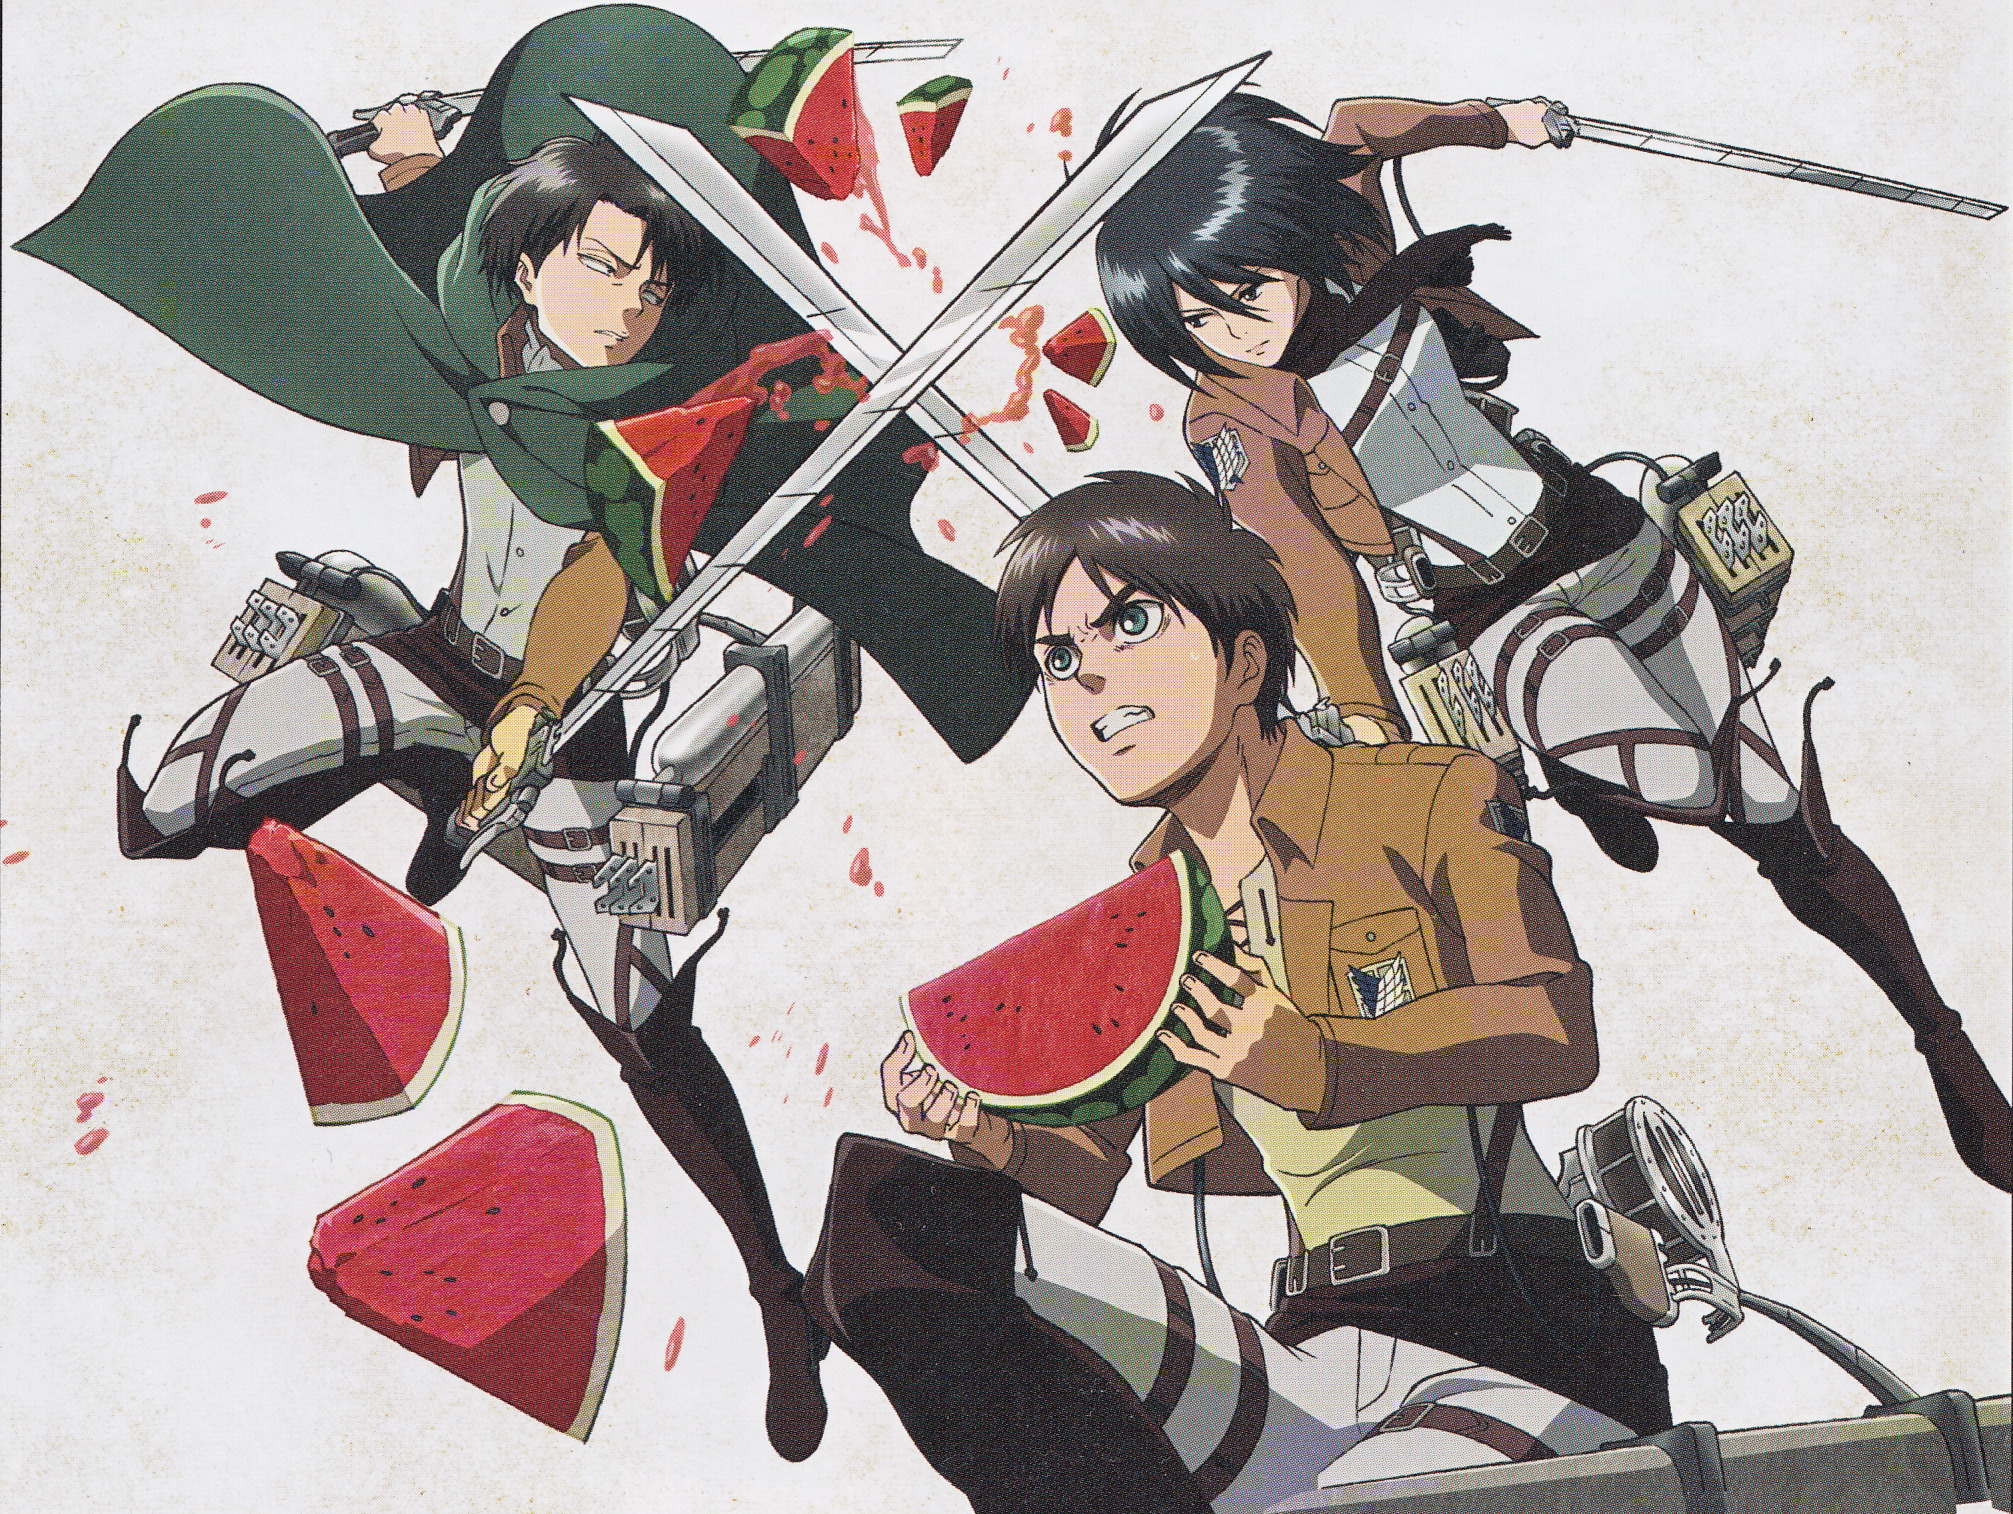 Download Wallpaper From Anime Attack On Titan With Tags Eren Yeager Mikasa Ackerman Screen Levi Ackerman